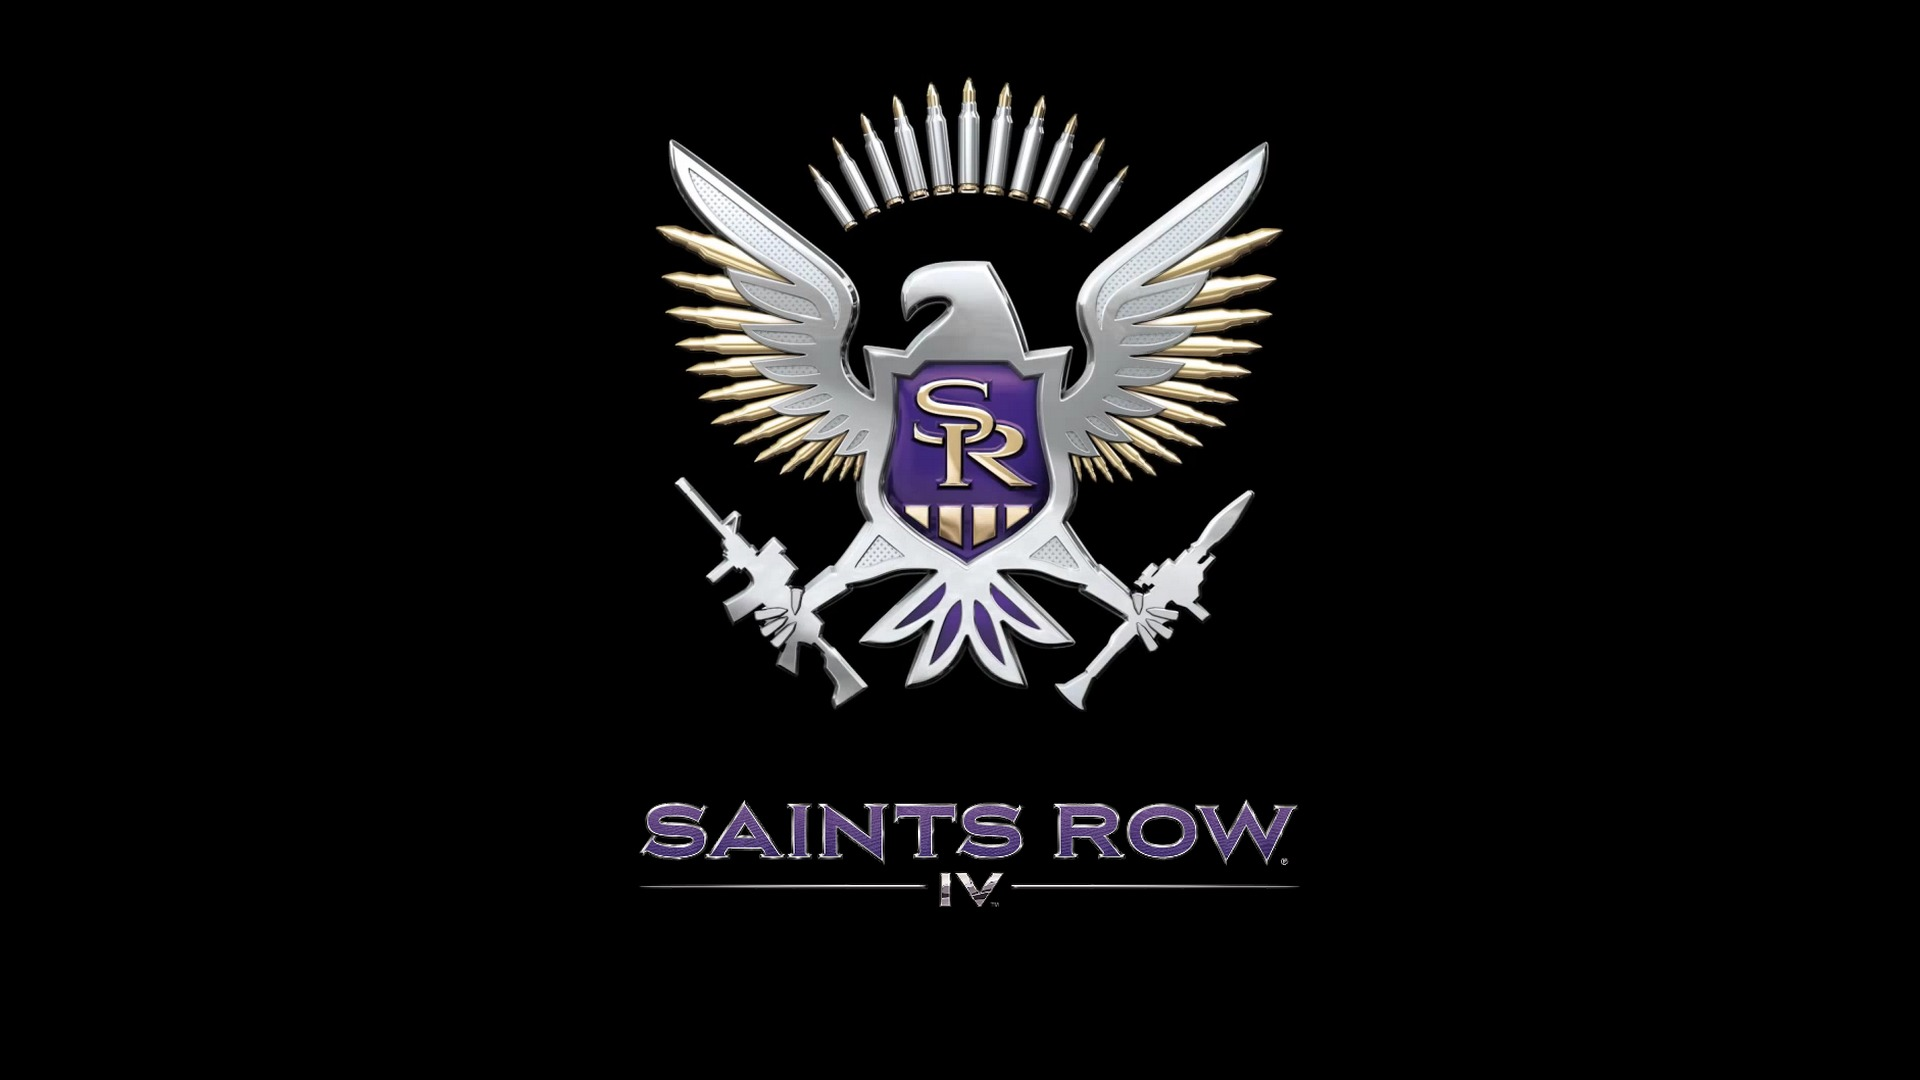 Saints Row Iv Wallpaper 1920x1080 By Friesgamer By